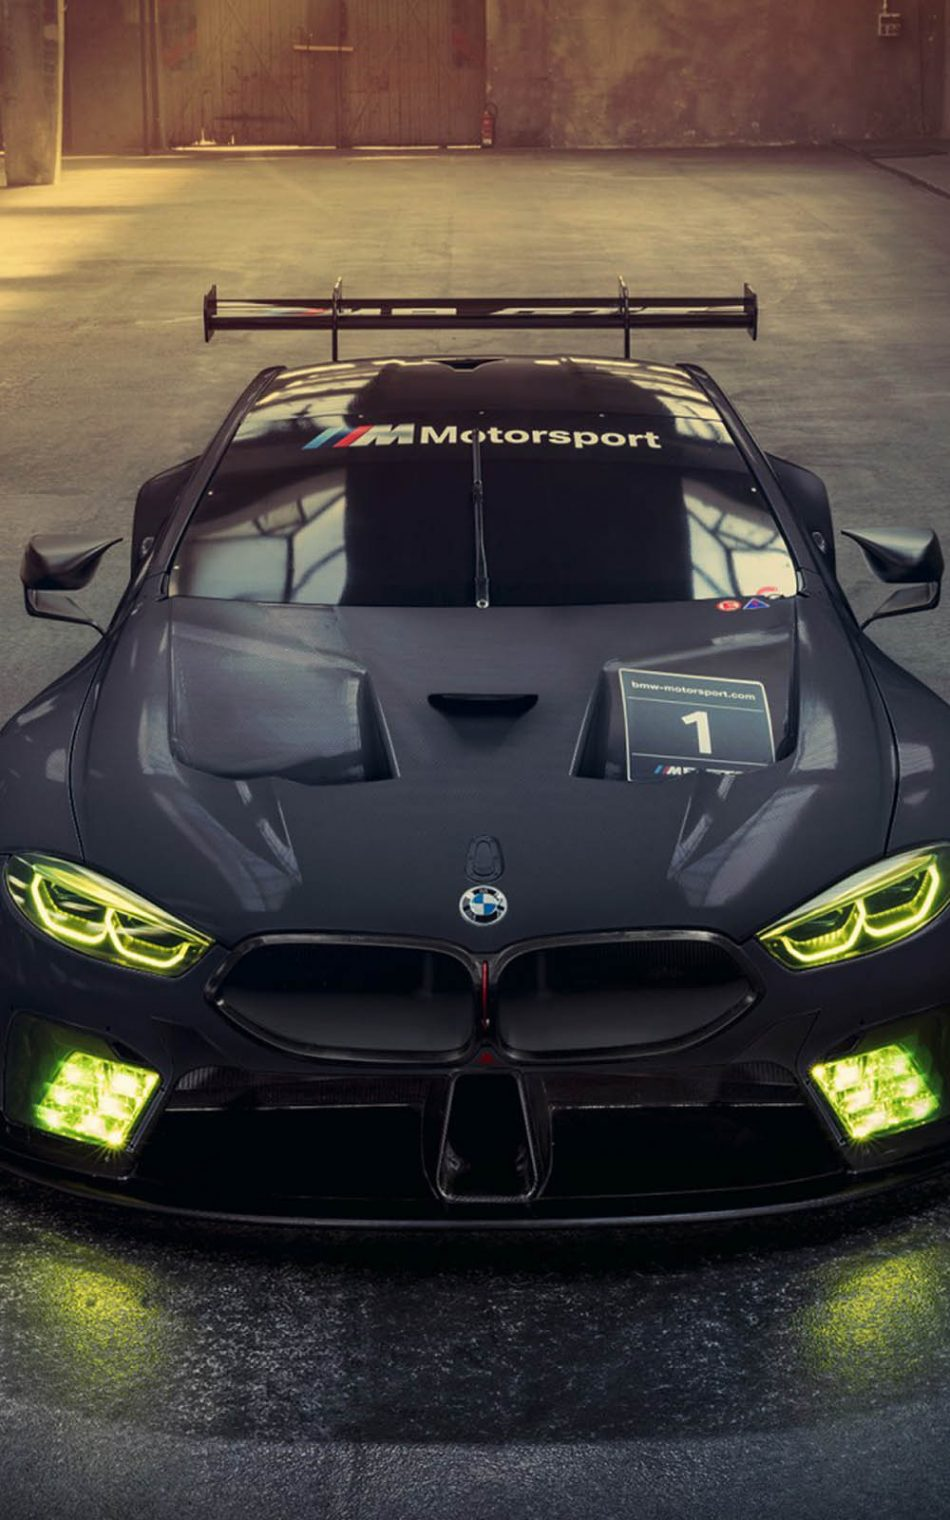 Vintage Car Wallpaper For Android Download Bmw M8 Gte Green Light Free Pure 4k Ultra Hd